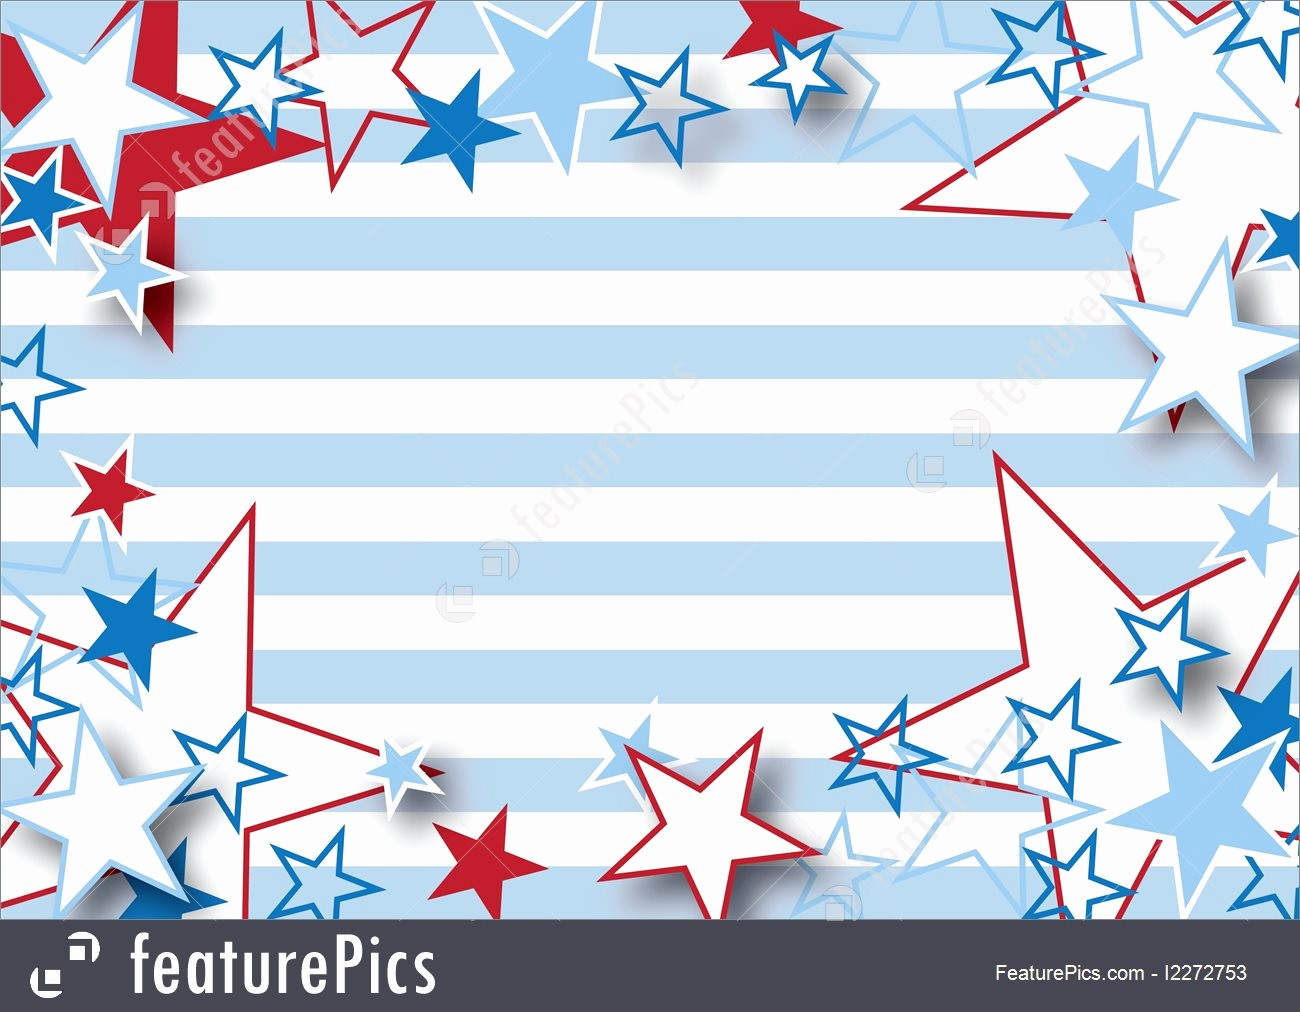 Closed 4th Of July Template Luxury Illustration Patriotic Stars and Stripes